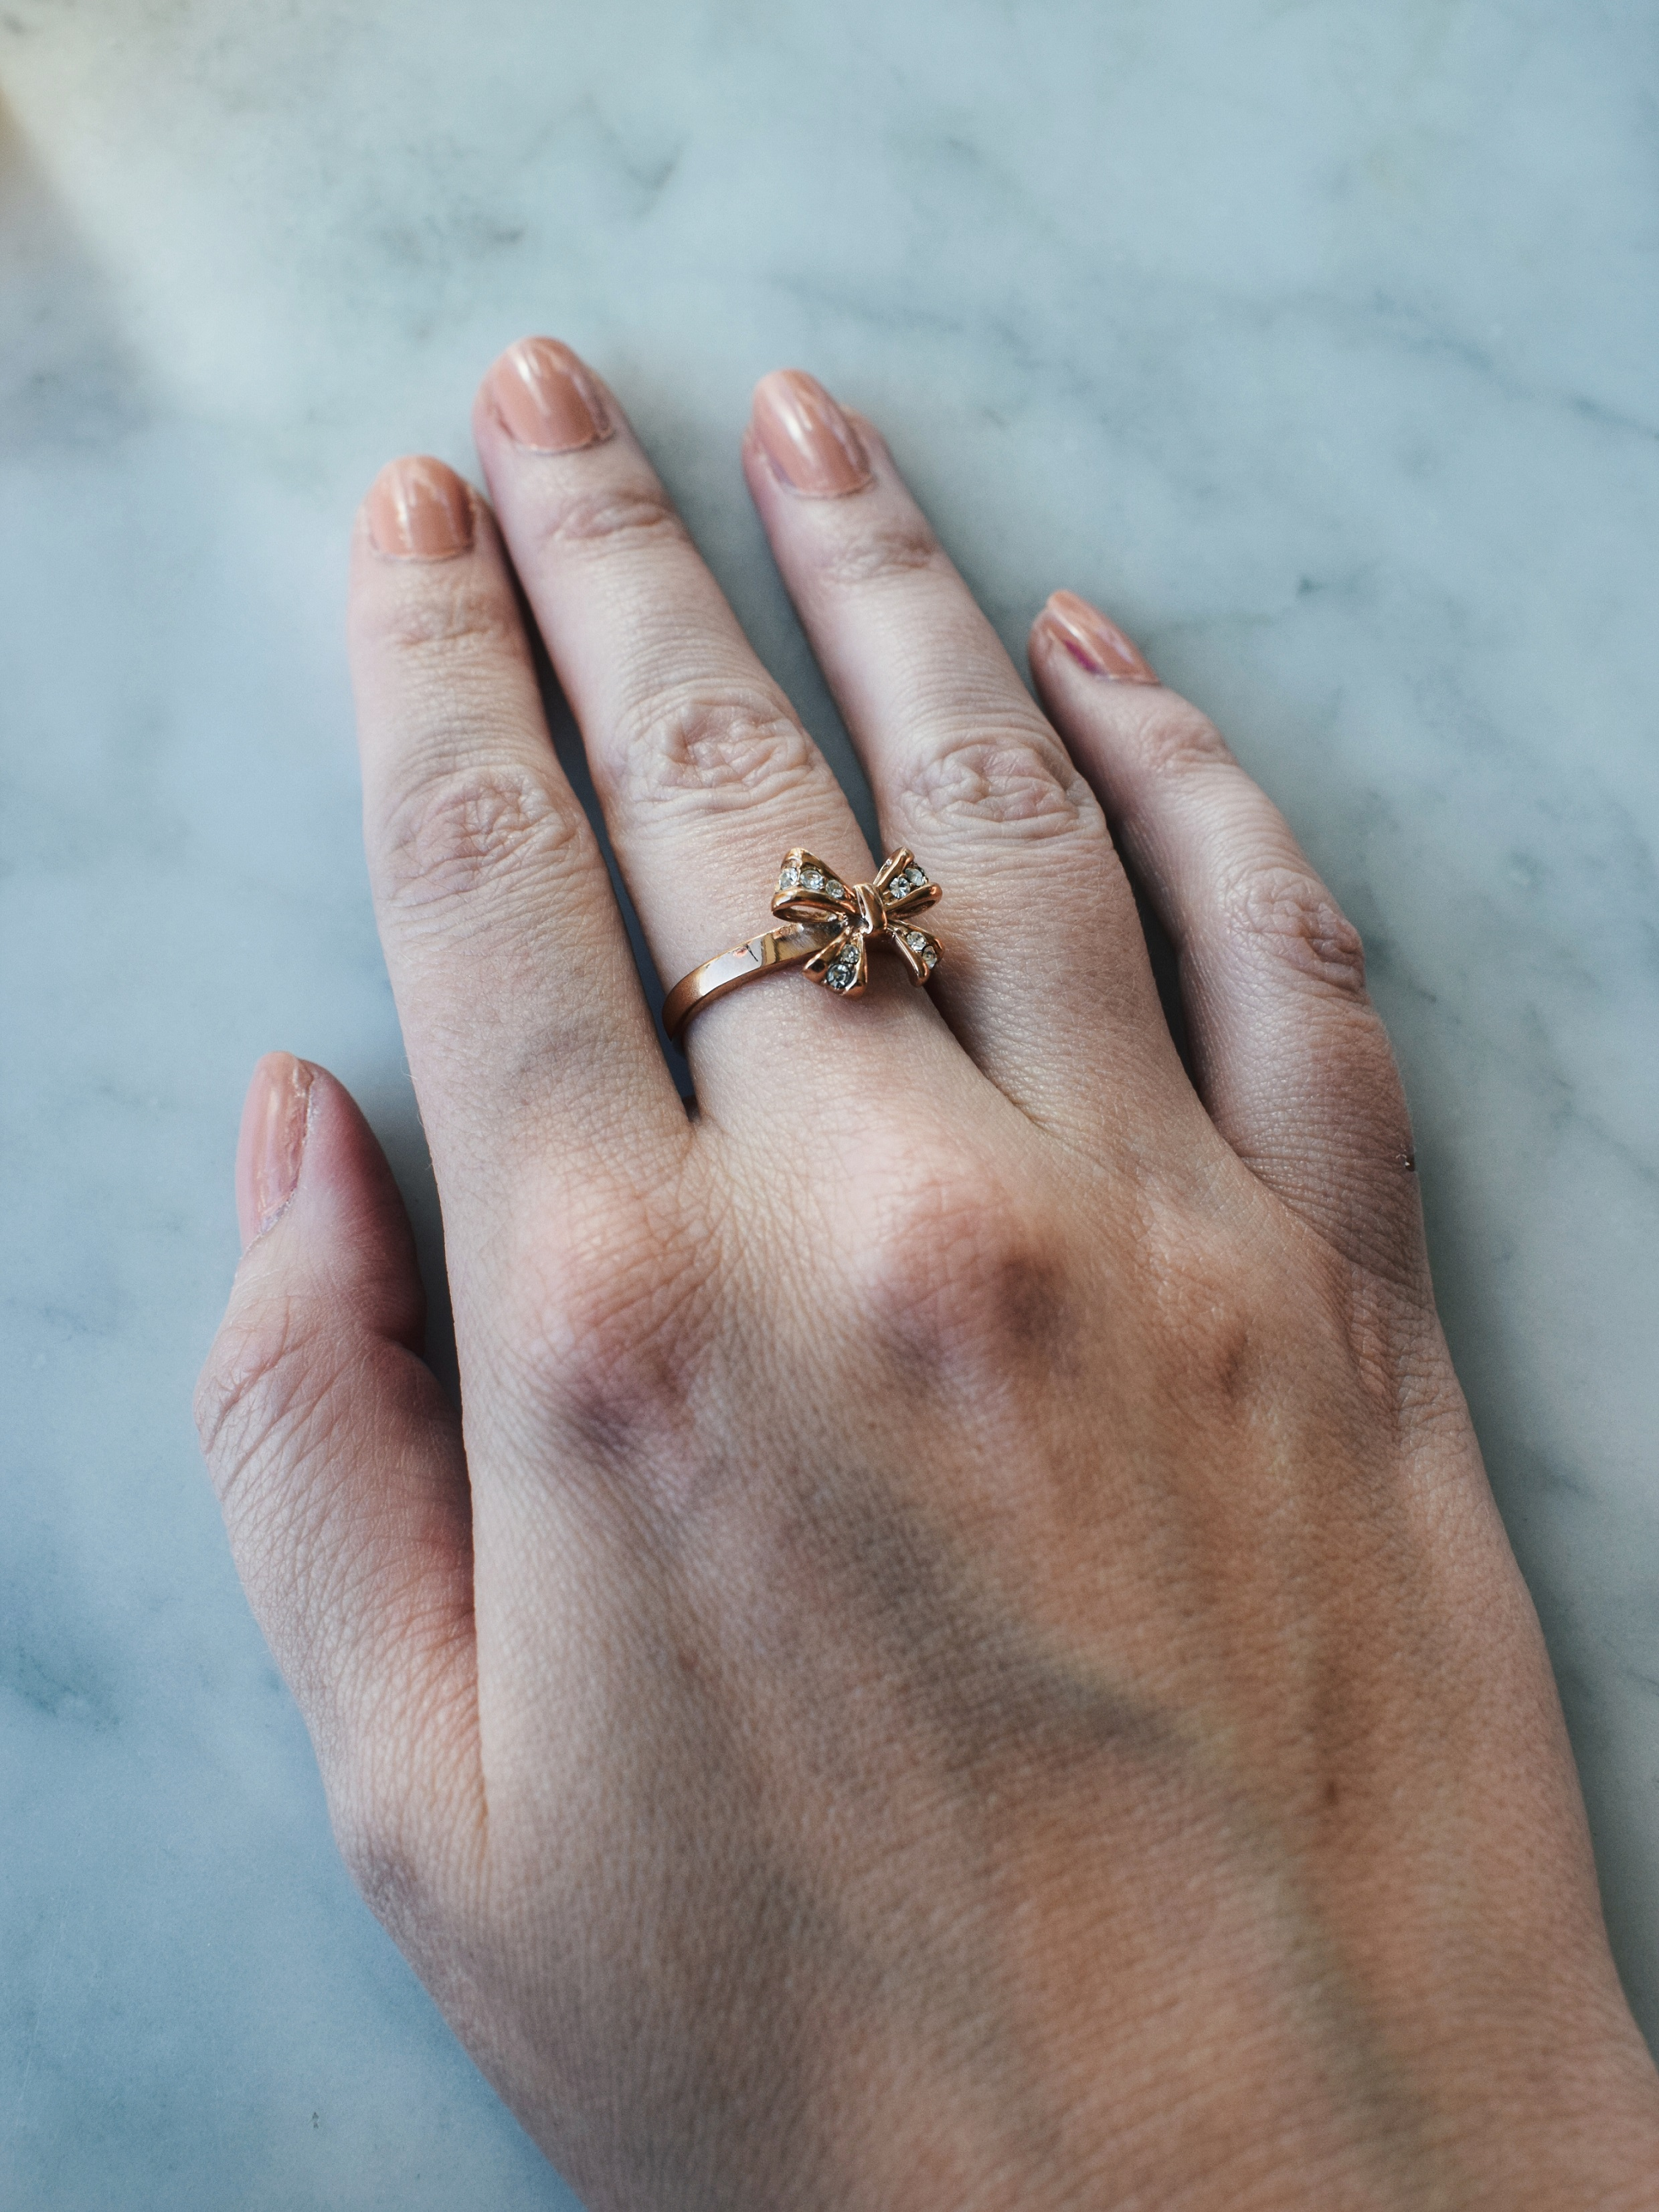 Outlandosh blog style essentials jewelry edition model ring